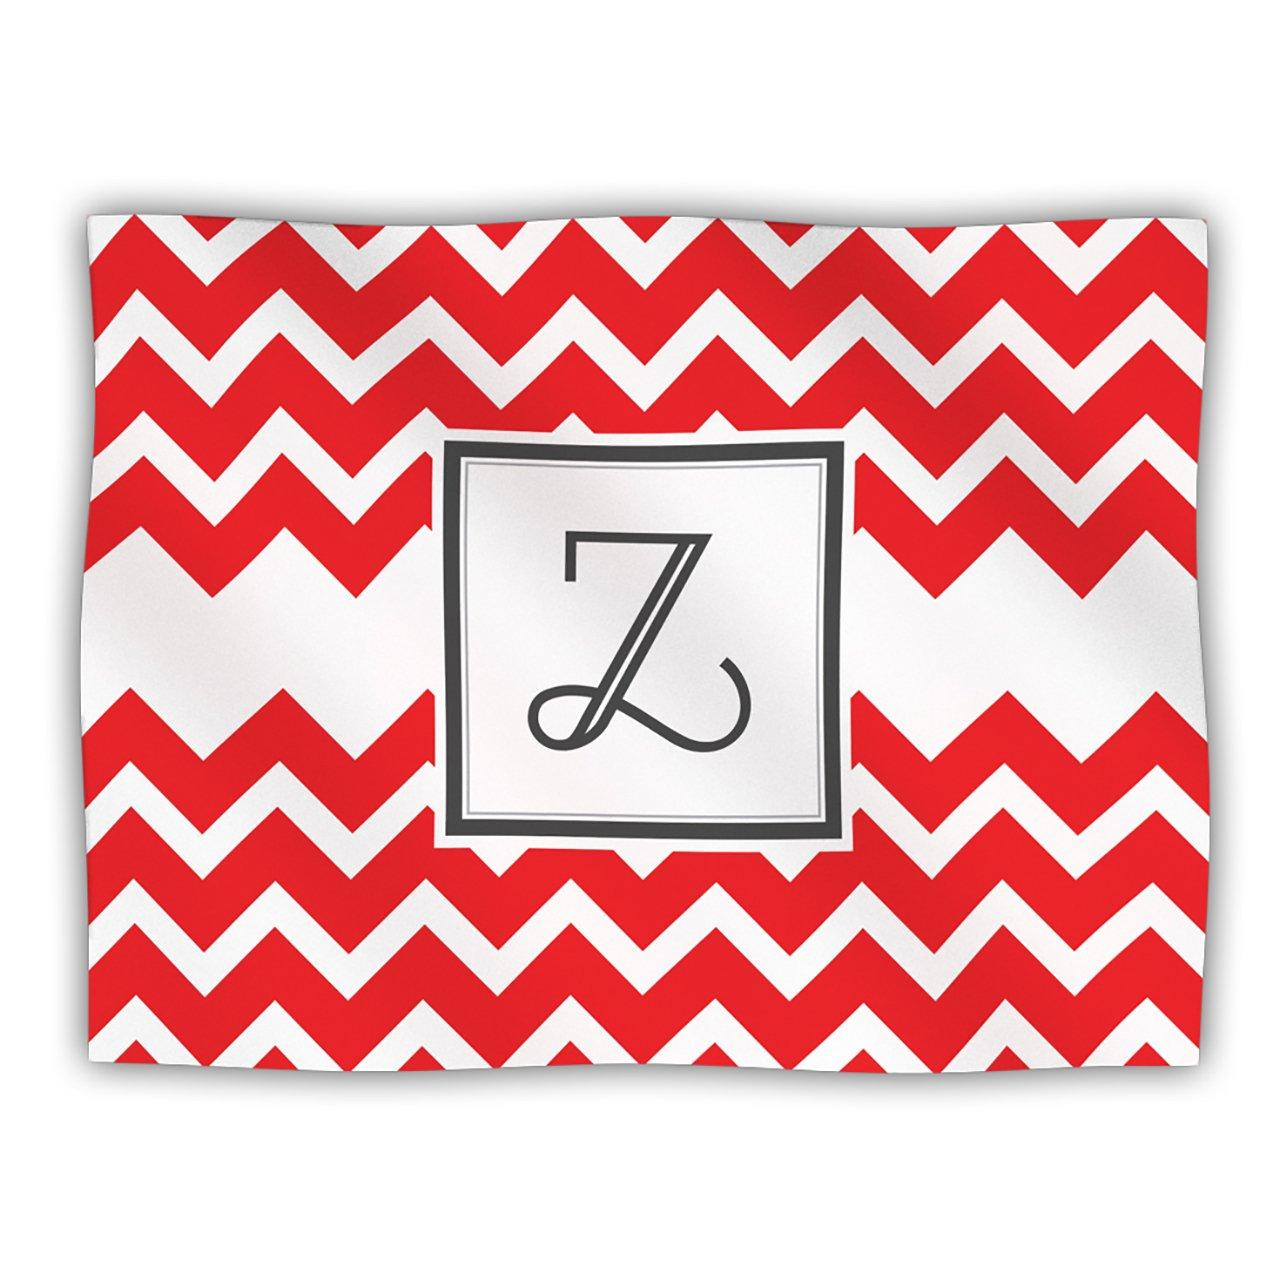 Kess InHouse KESS Original 'Monogram Chevron Red Letter Z' Dog Blanket, 40 by 30-Inch